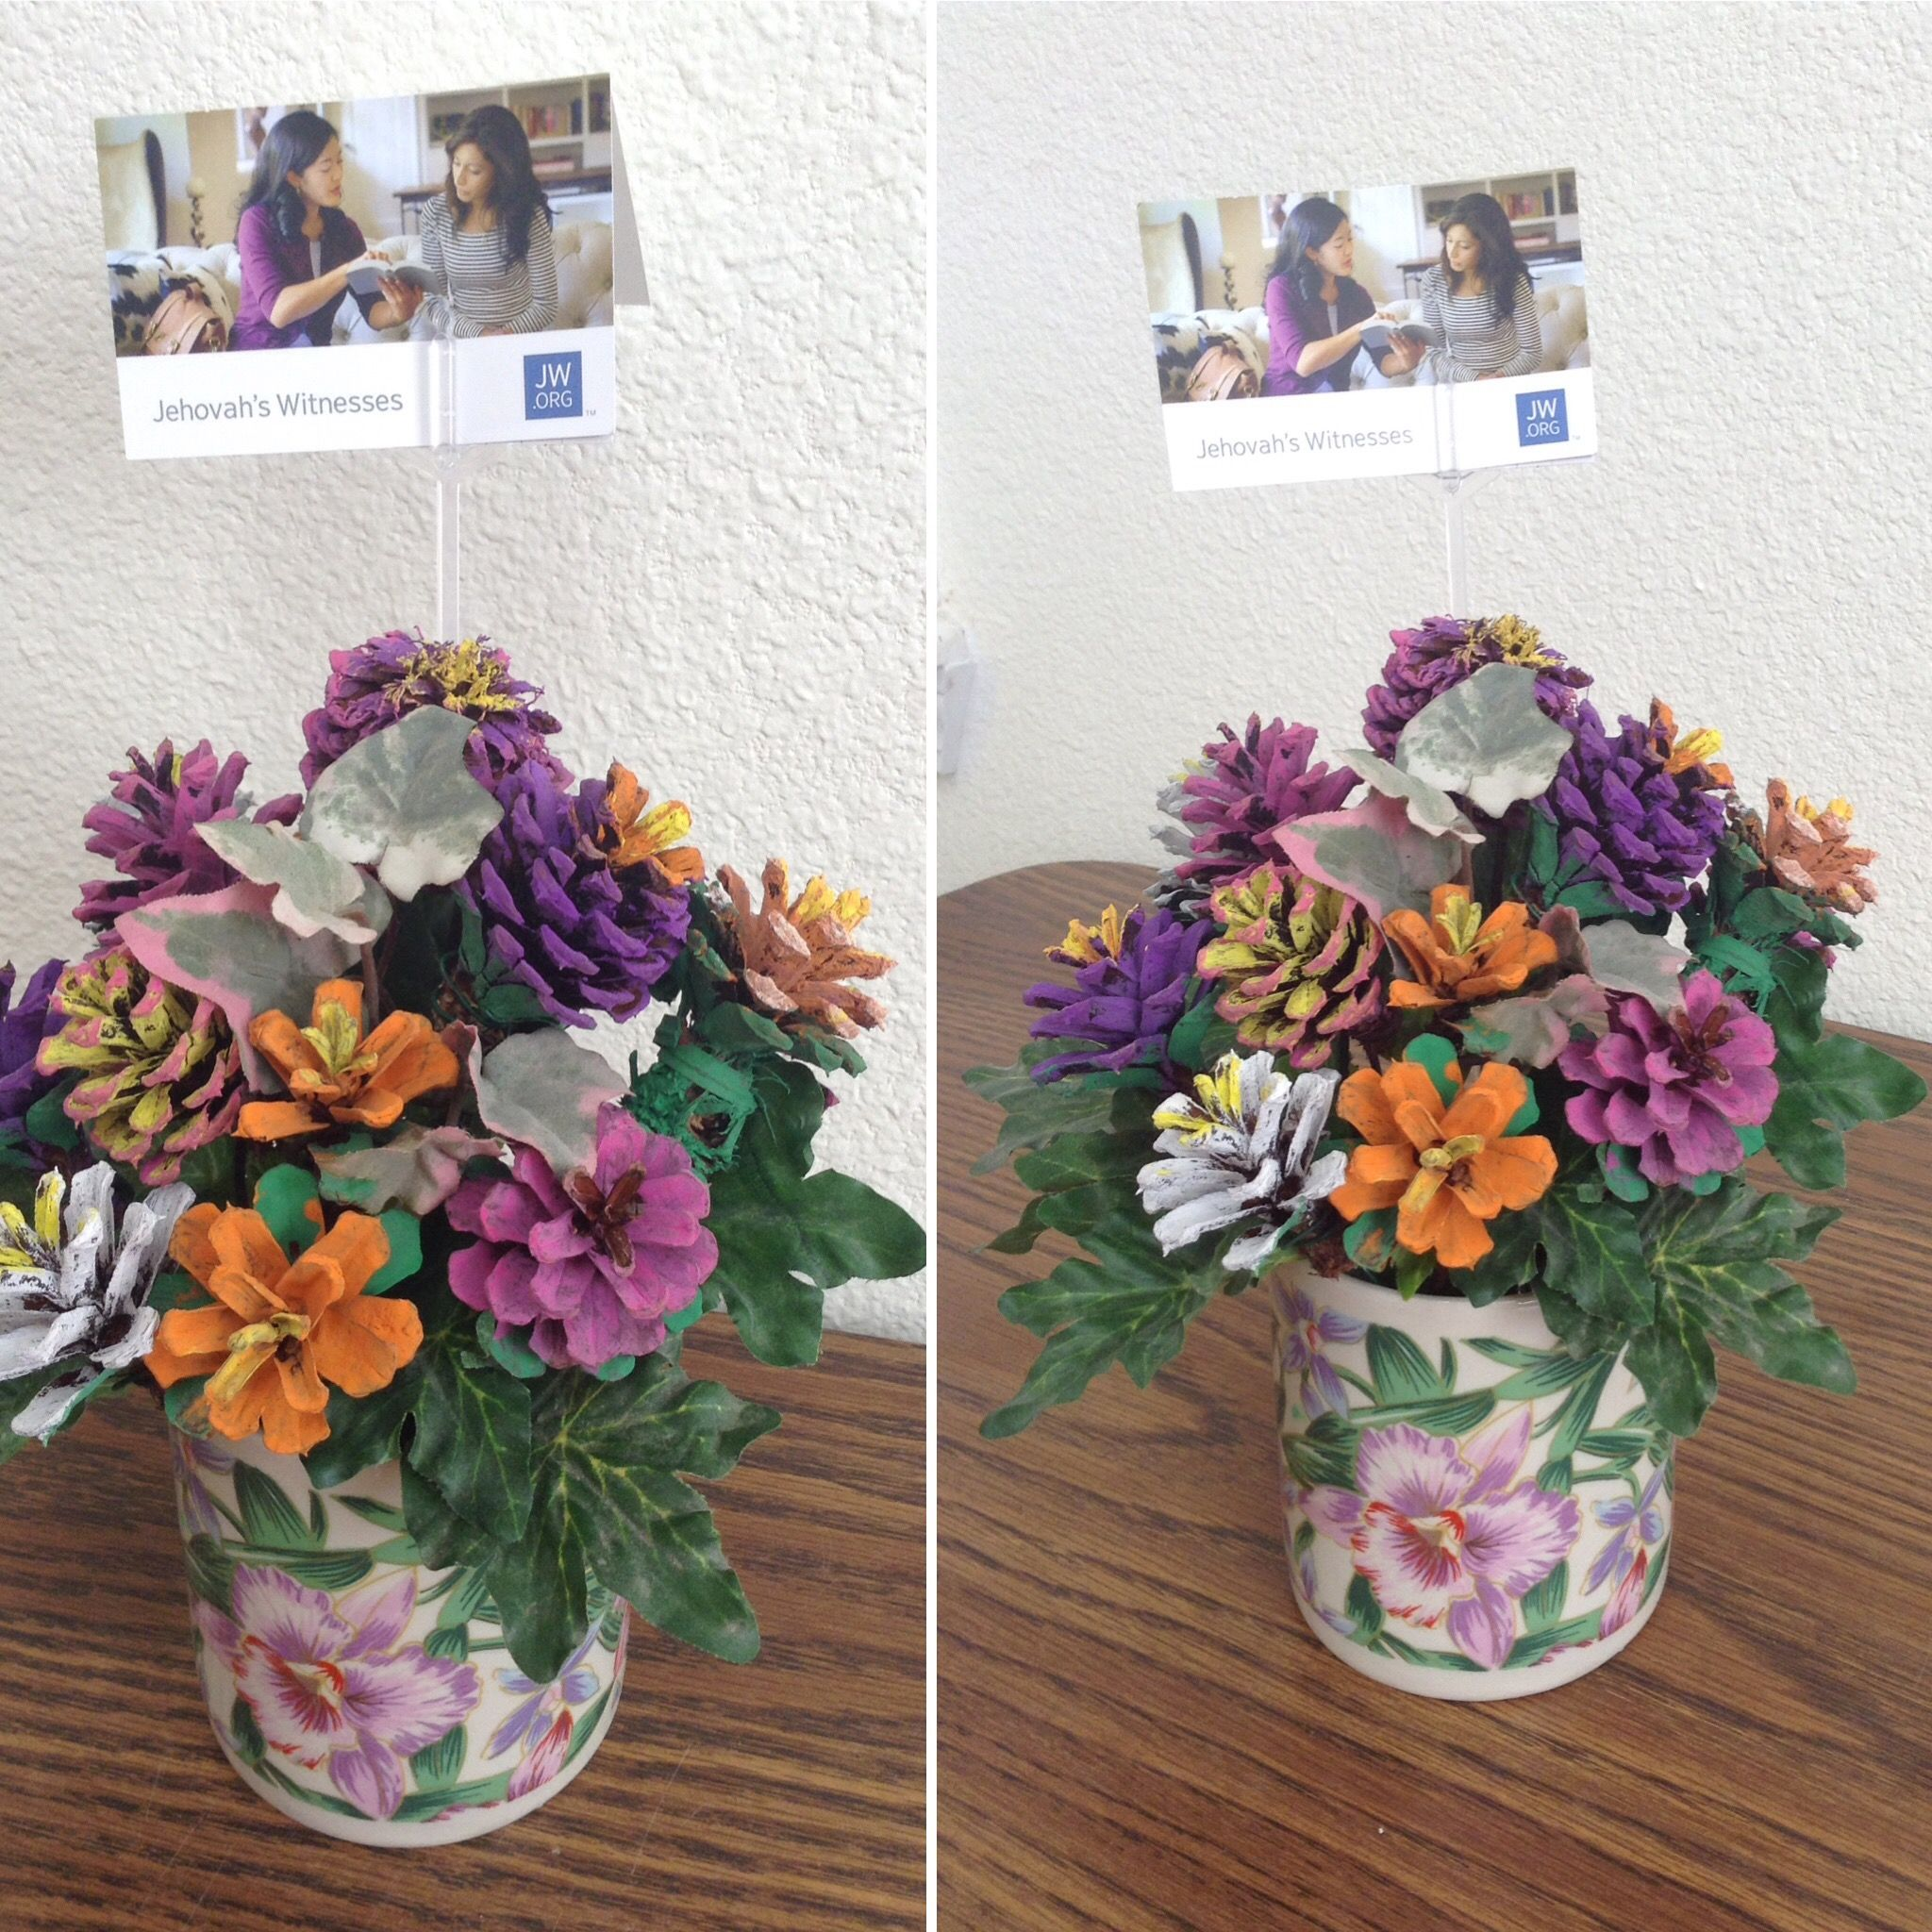 Painted Pine Cone Flower Arrangement Brought To Nursing Home Bible Study Painted Created By Shar Pine Cone Decorations Nursing Home Crafts Pine Cone Crafts